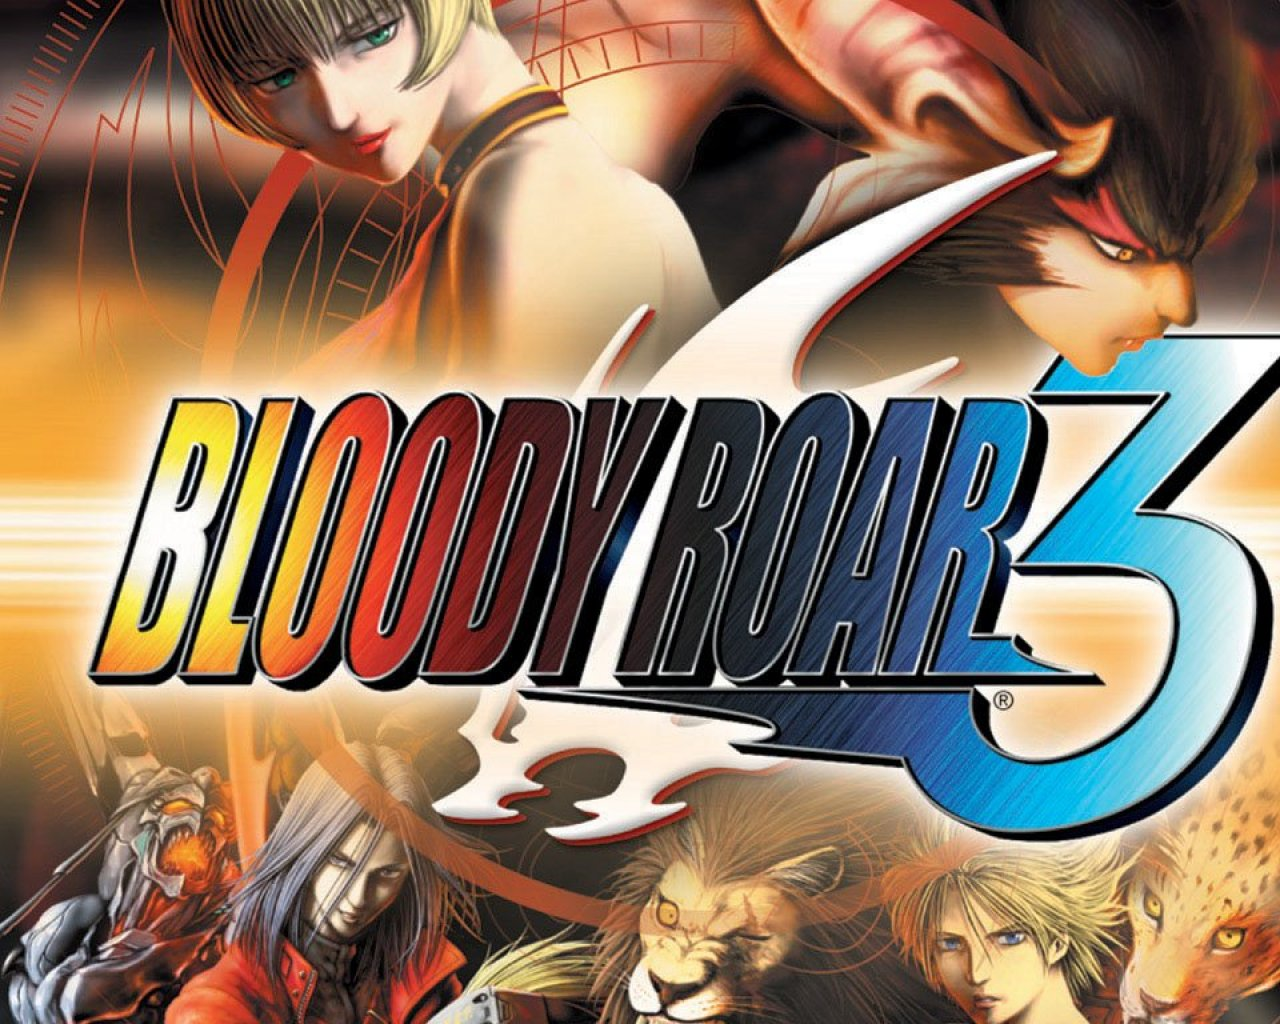 Bloody roar 2 game xxx photo adult photo